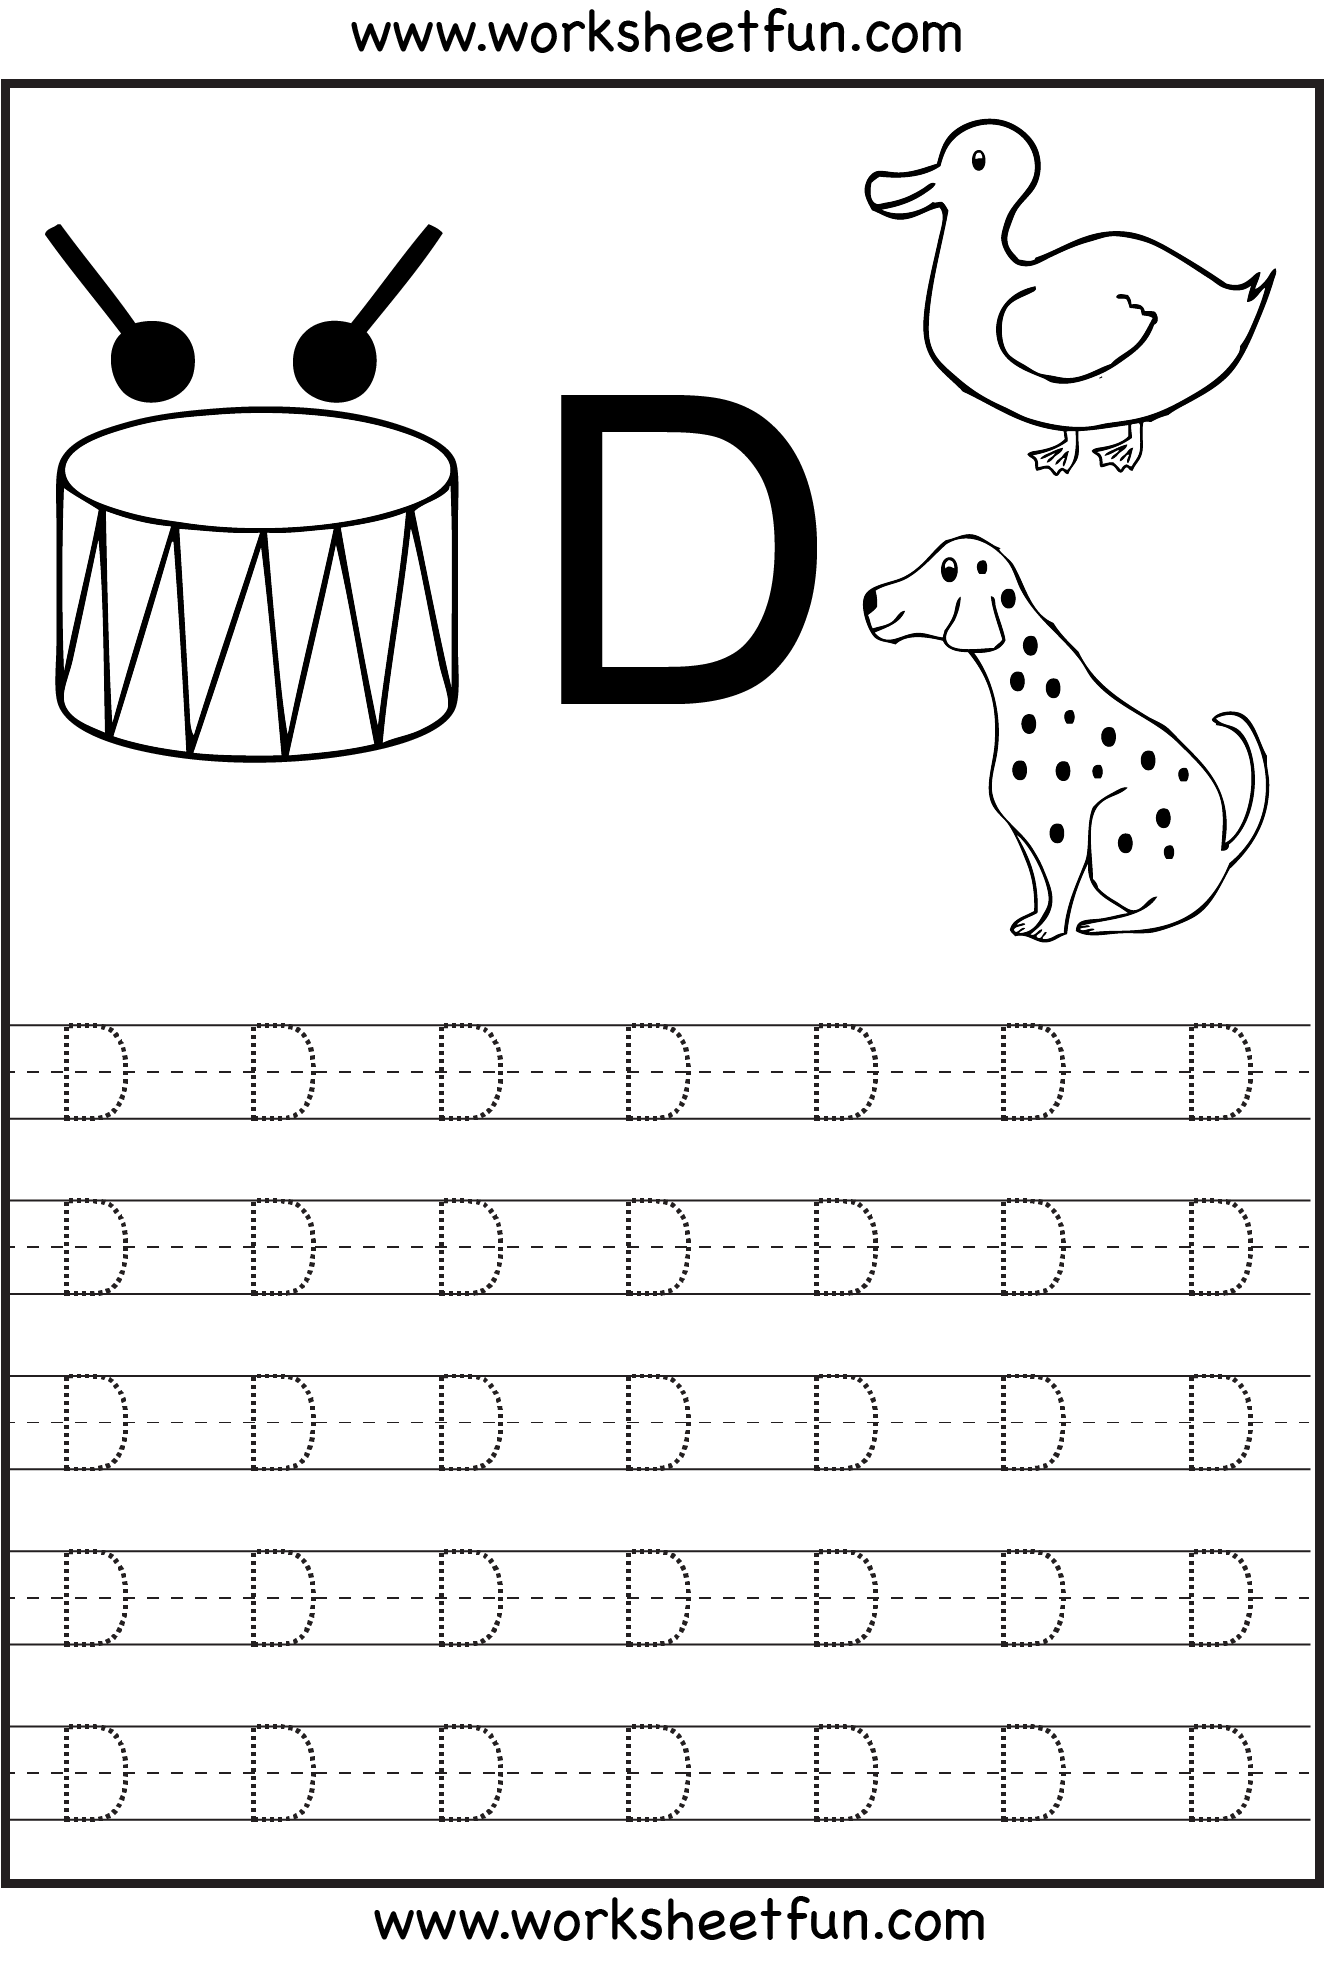 Preschool Alphabet Tracing Worksheets